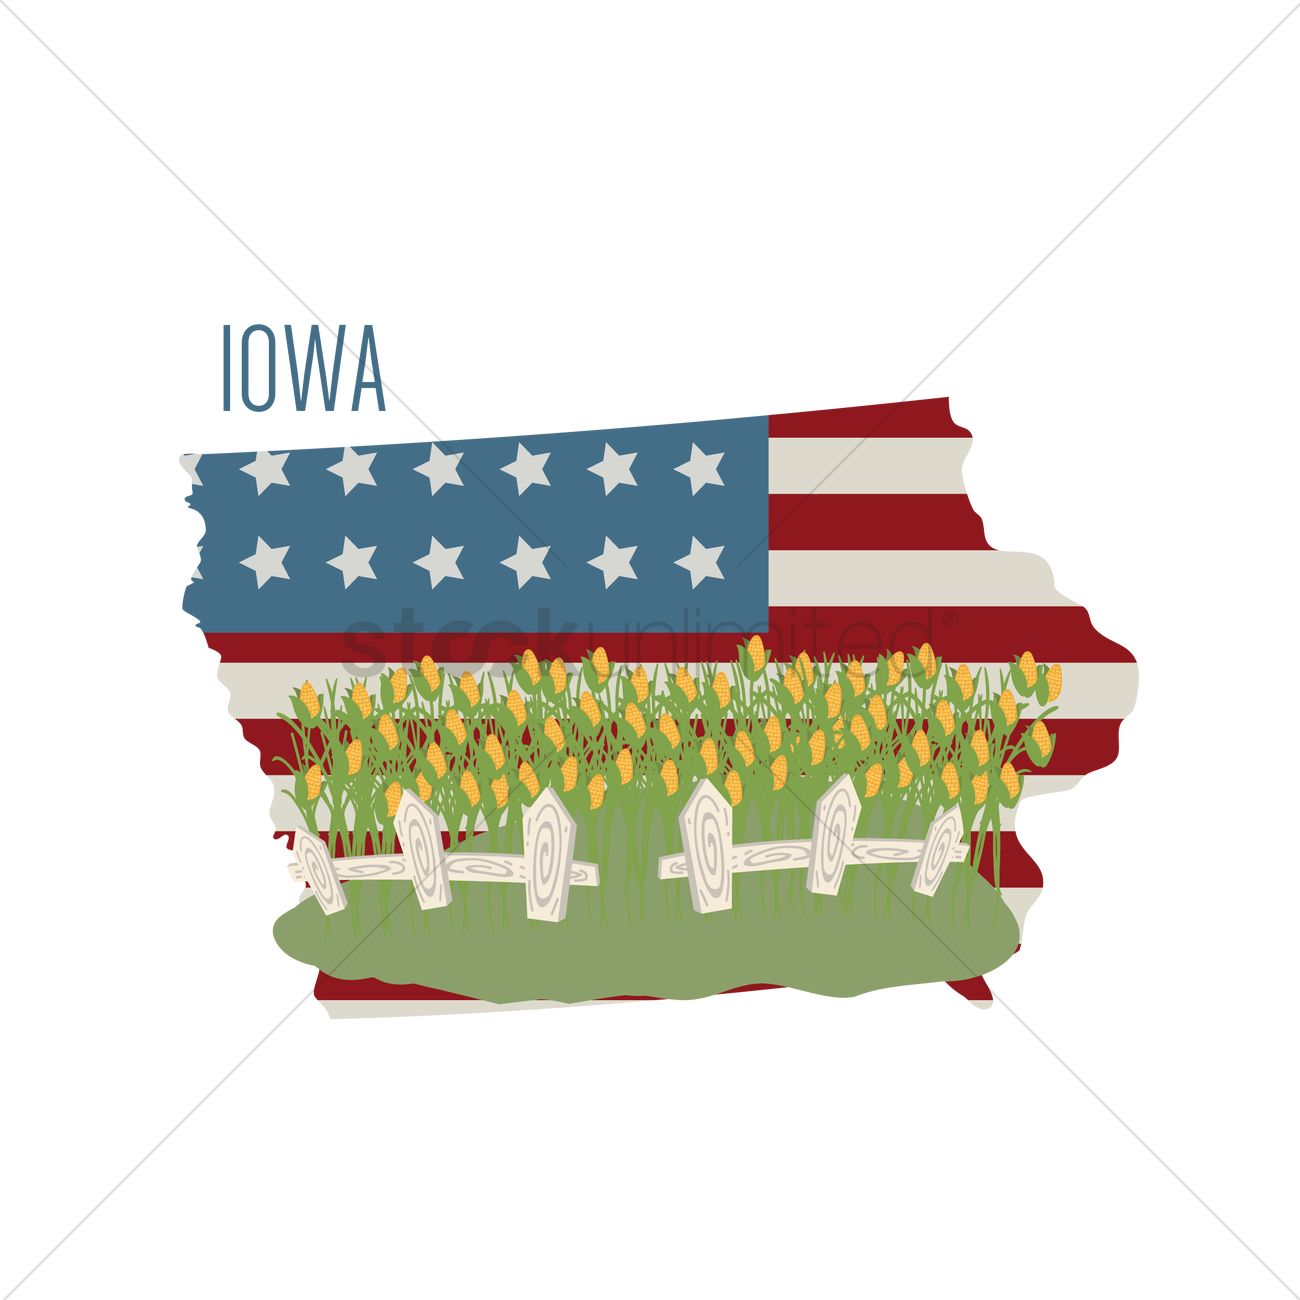 Iowa State Map With Corn Field Vector Image StockUnlimited - Iowa usa map